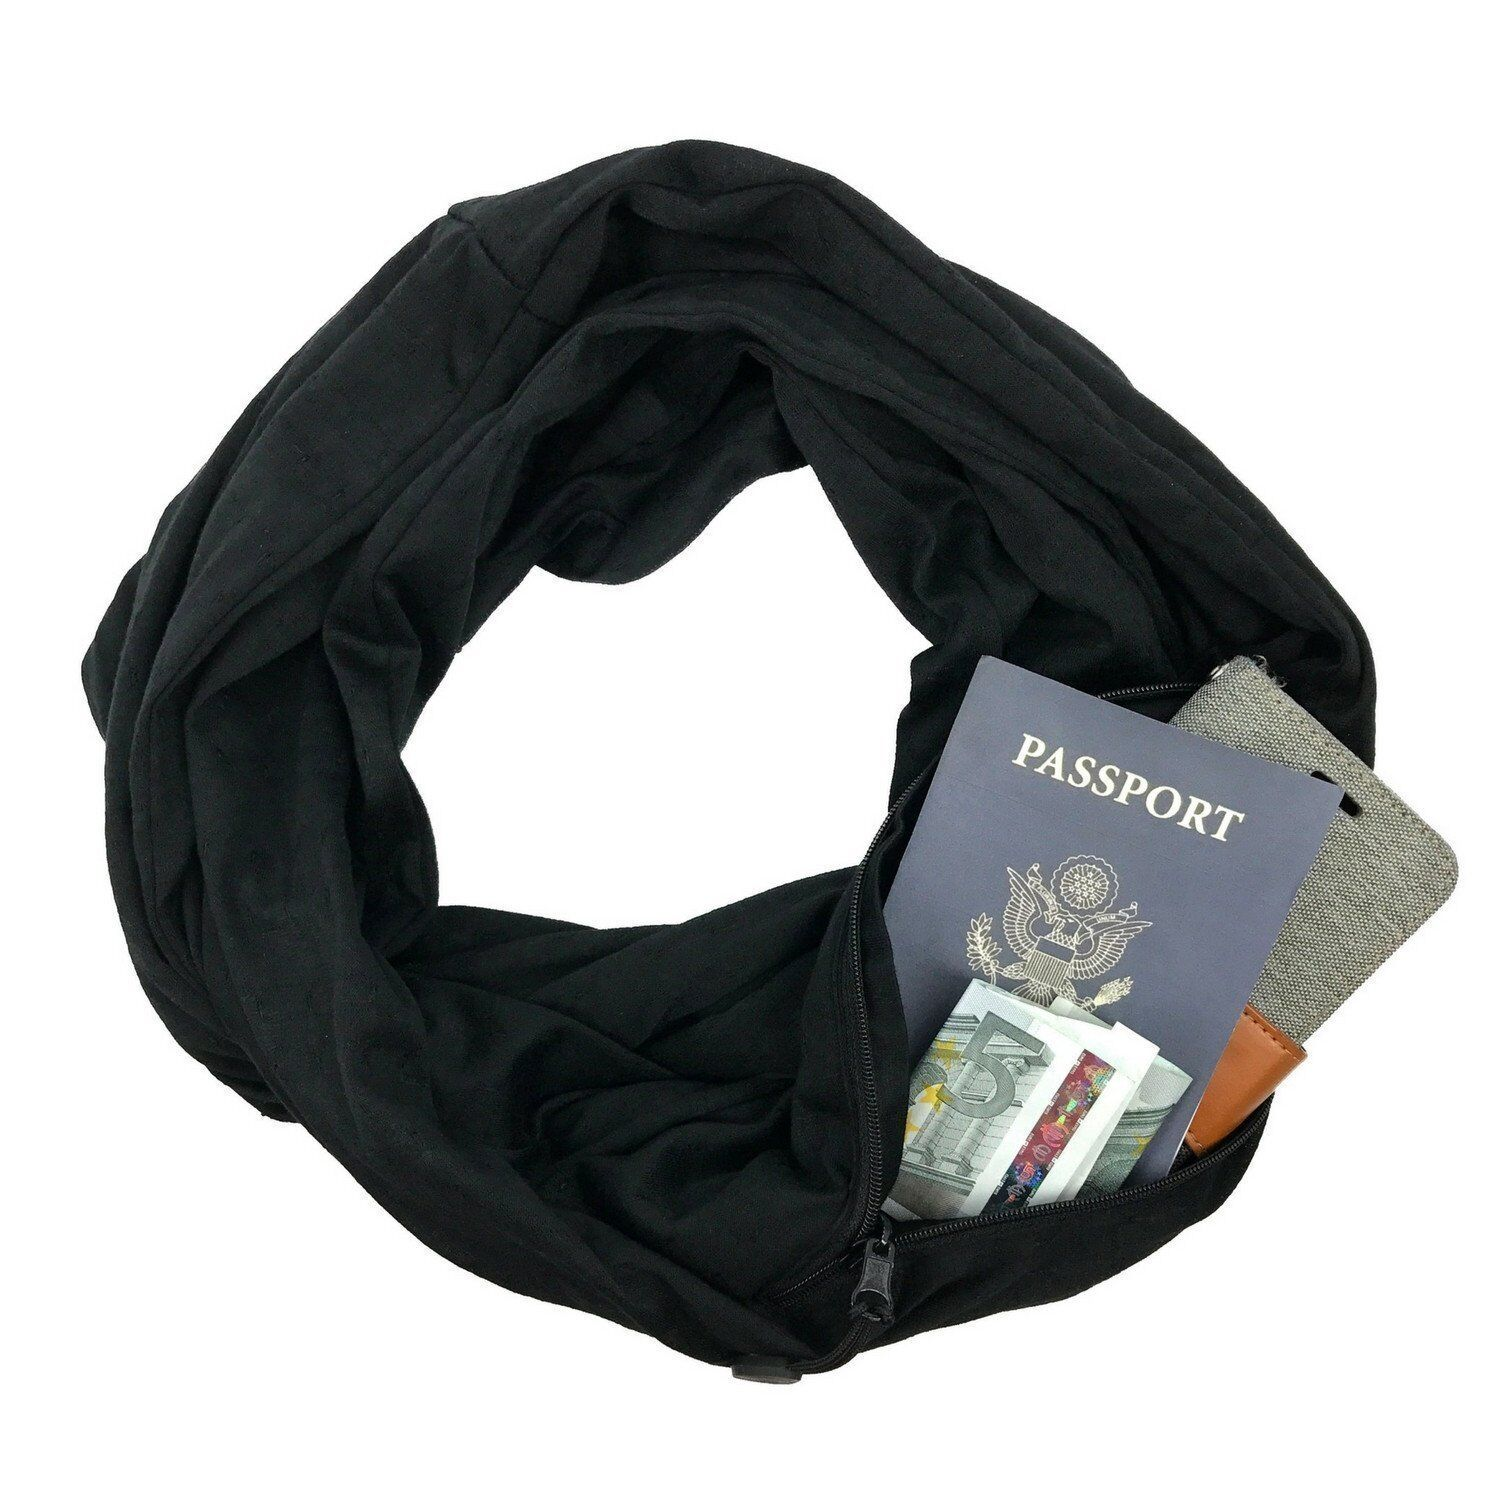 Hot Scarf Unisex Black Infinity Cotton Scarves With Zipper